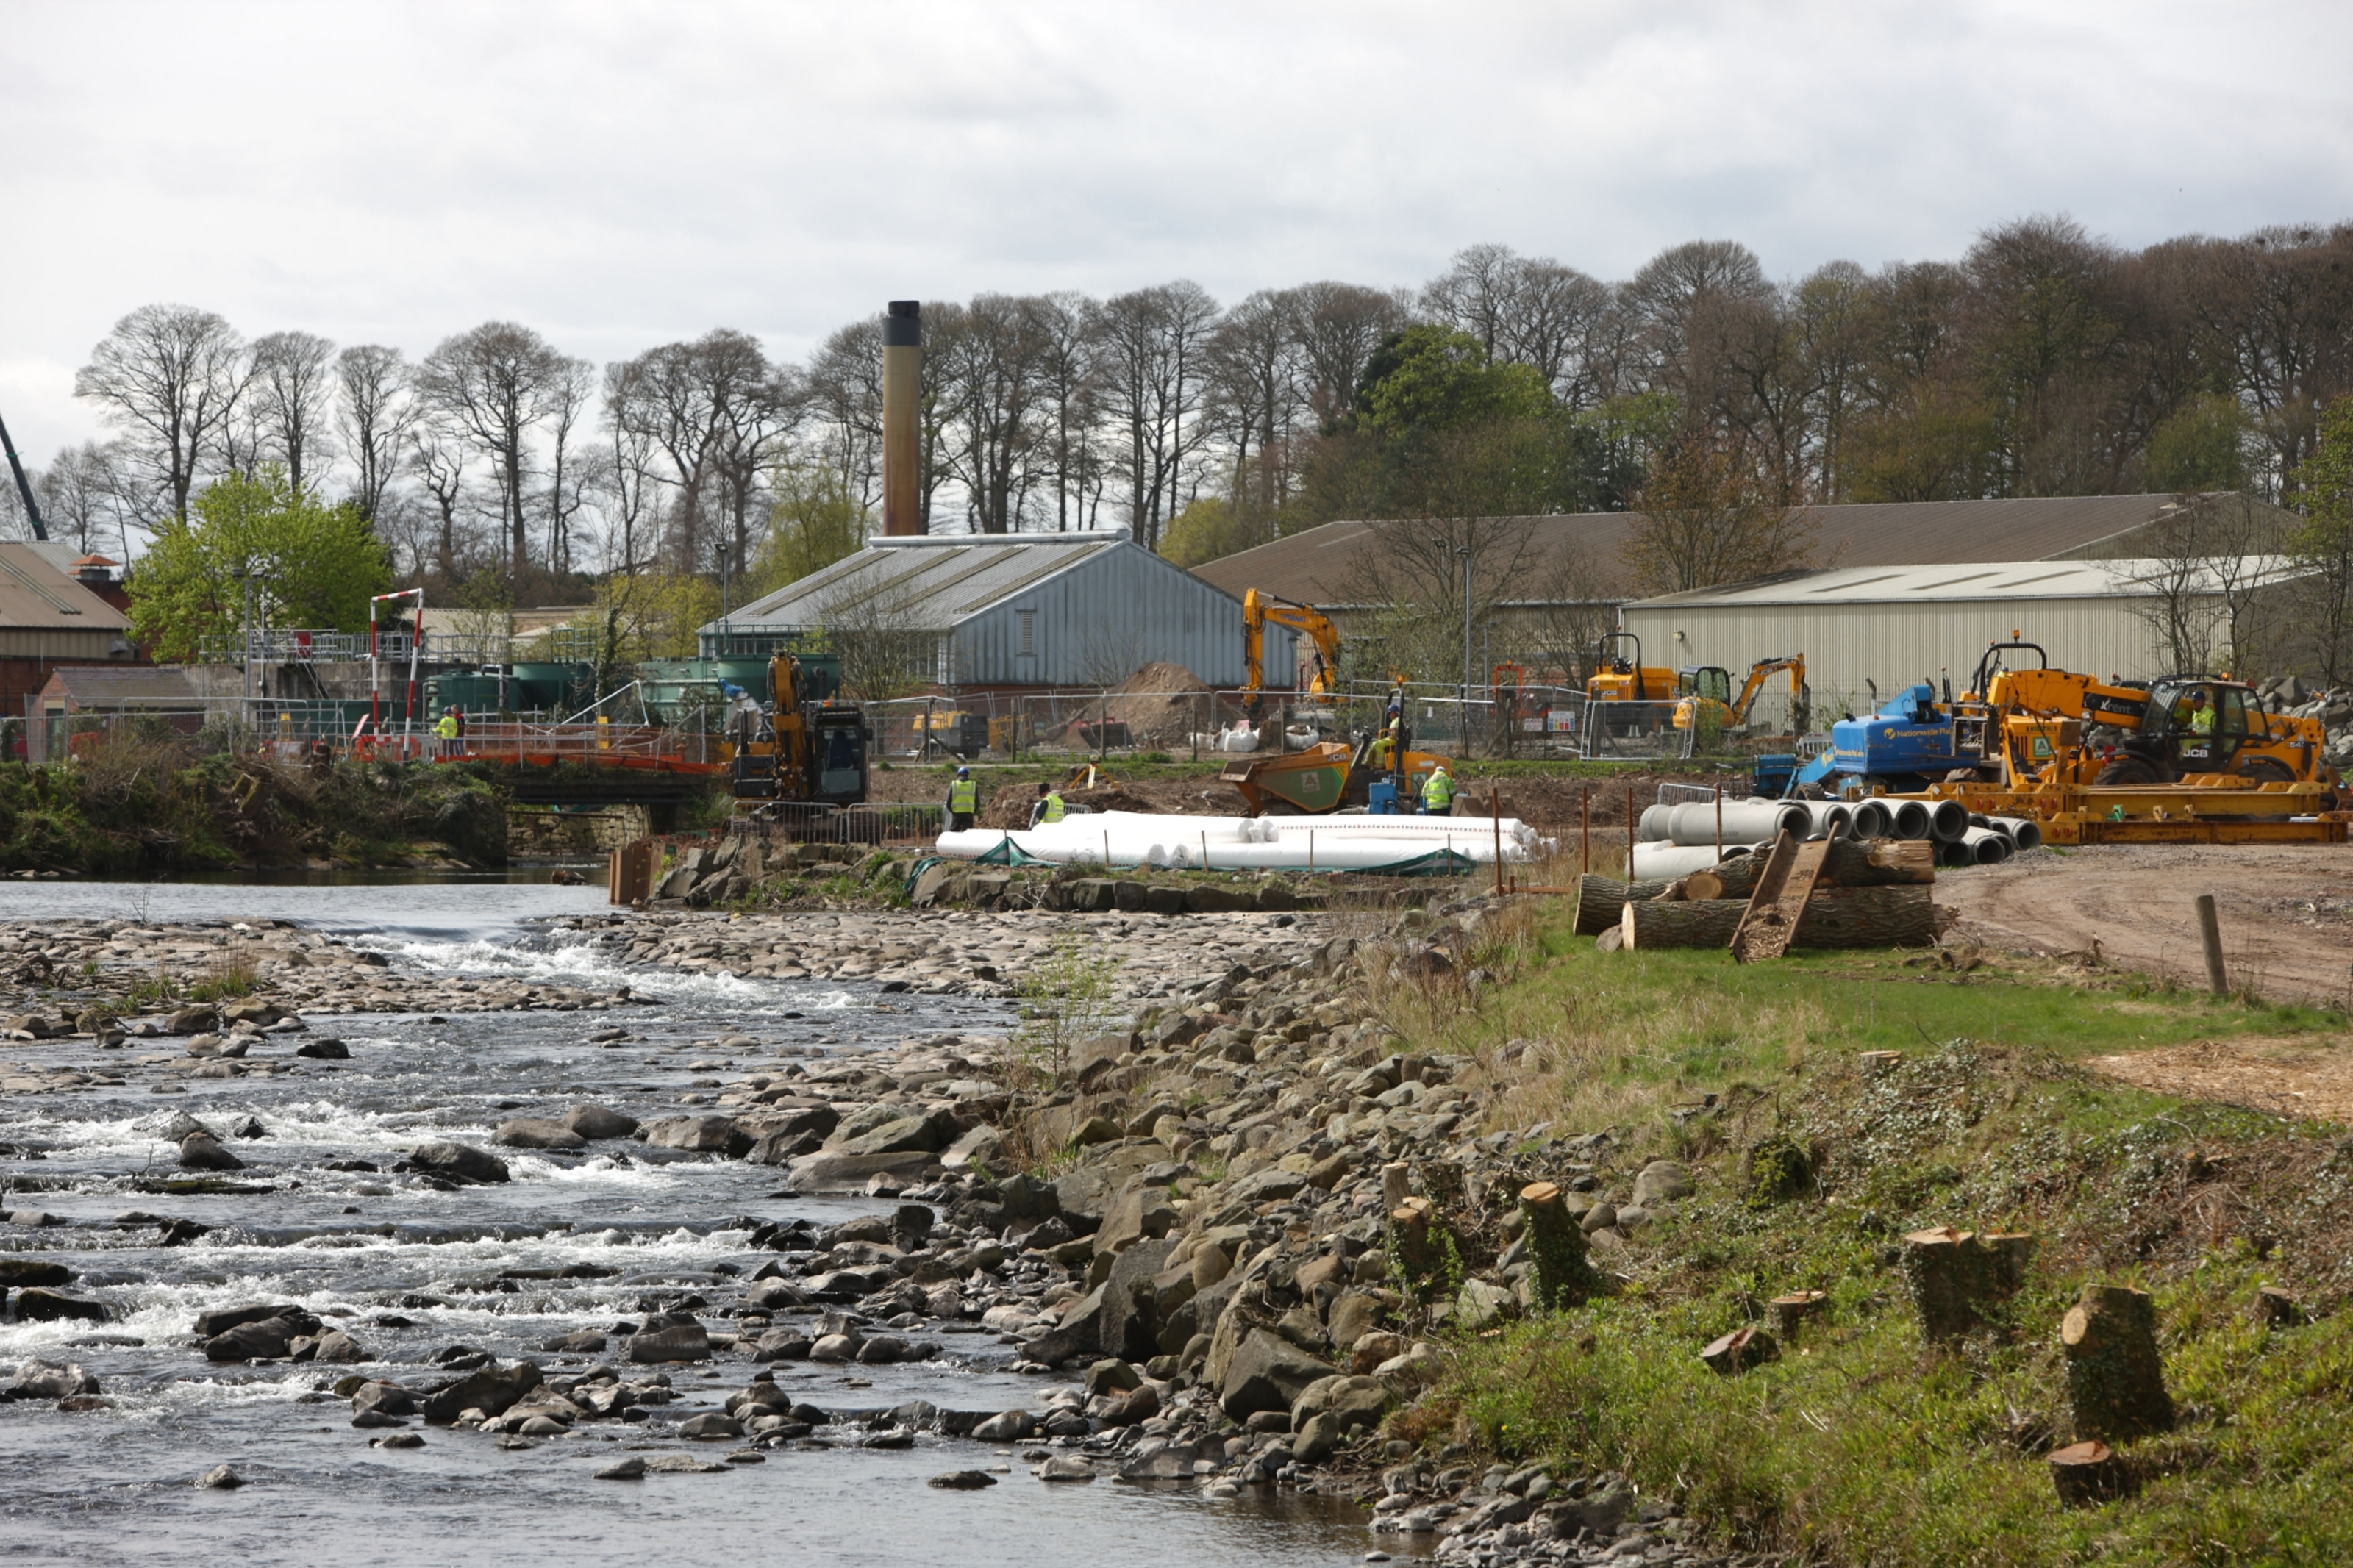 Flood defence works on the River Almond